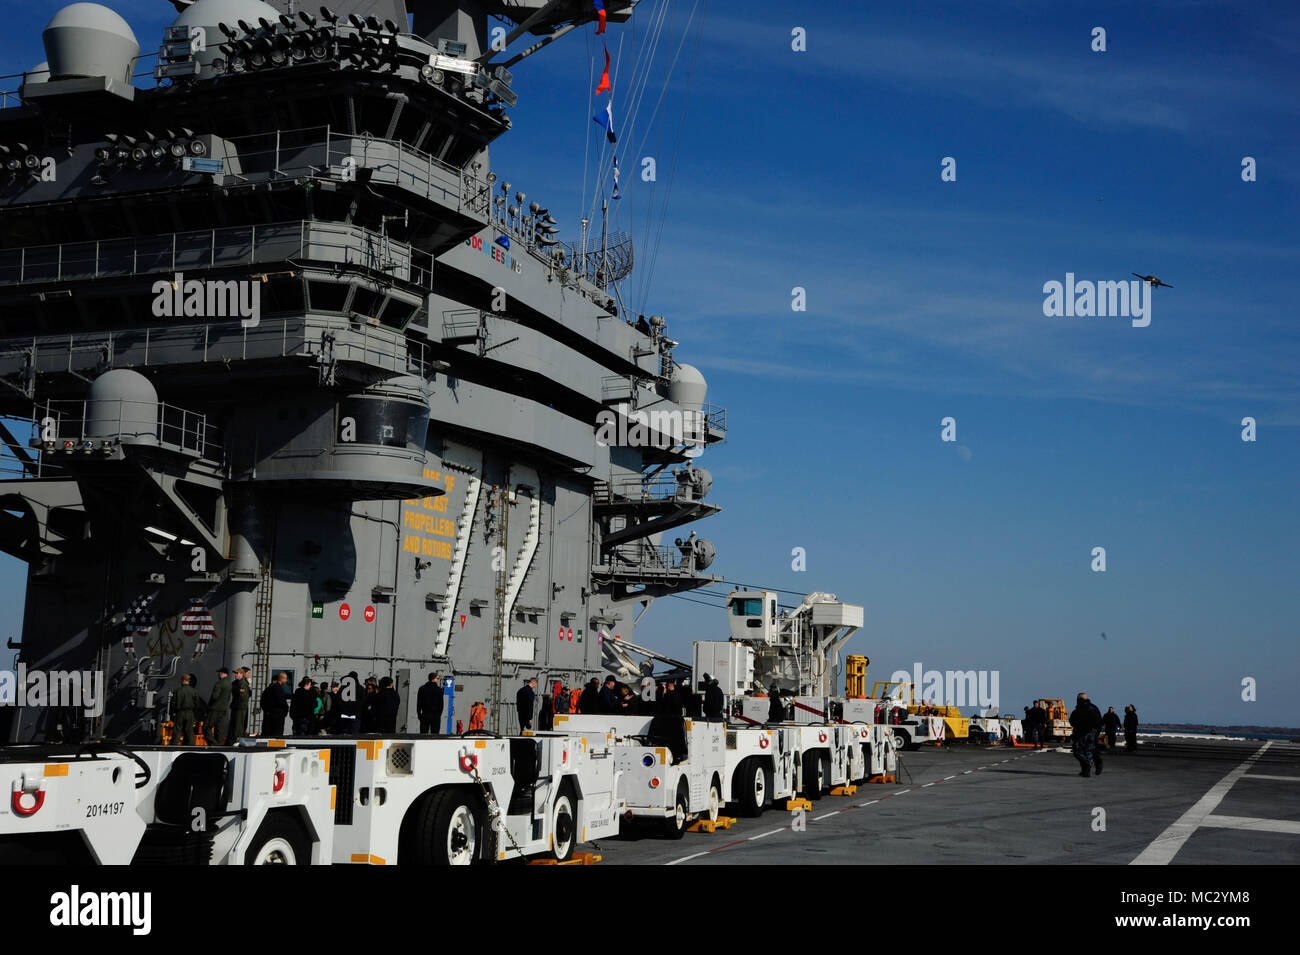 180126-N-ON904-0031 NORKOLK (Jan. 26, 2018) The Nimitz-class aircraft carrier USS Abraham Lincoln (CVN 72) pulls away from the pier. (U.S. Navy photo by Mass Communication Specialist Seaman Ashley M.C. Estrella/Released) - Stock Image